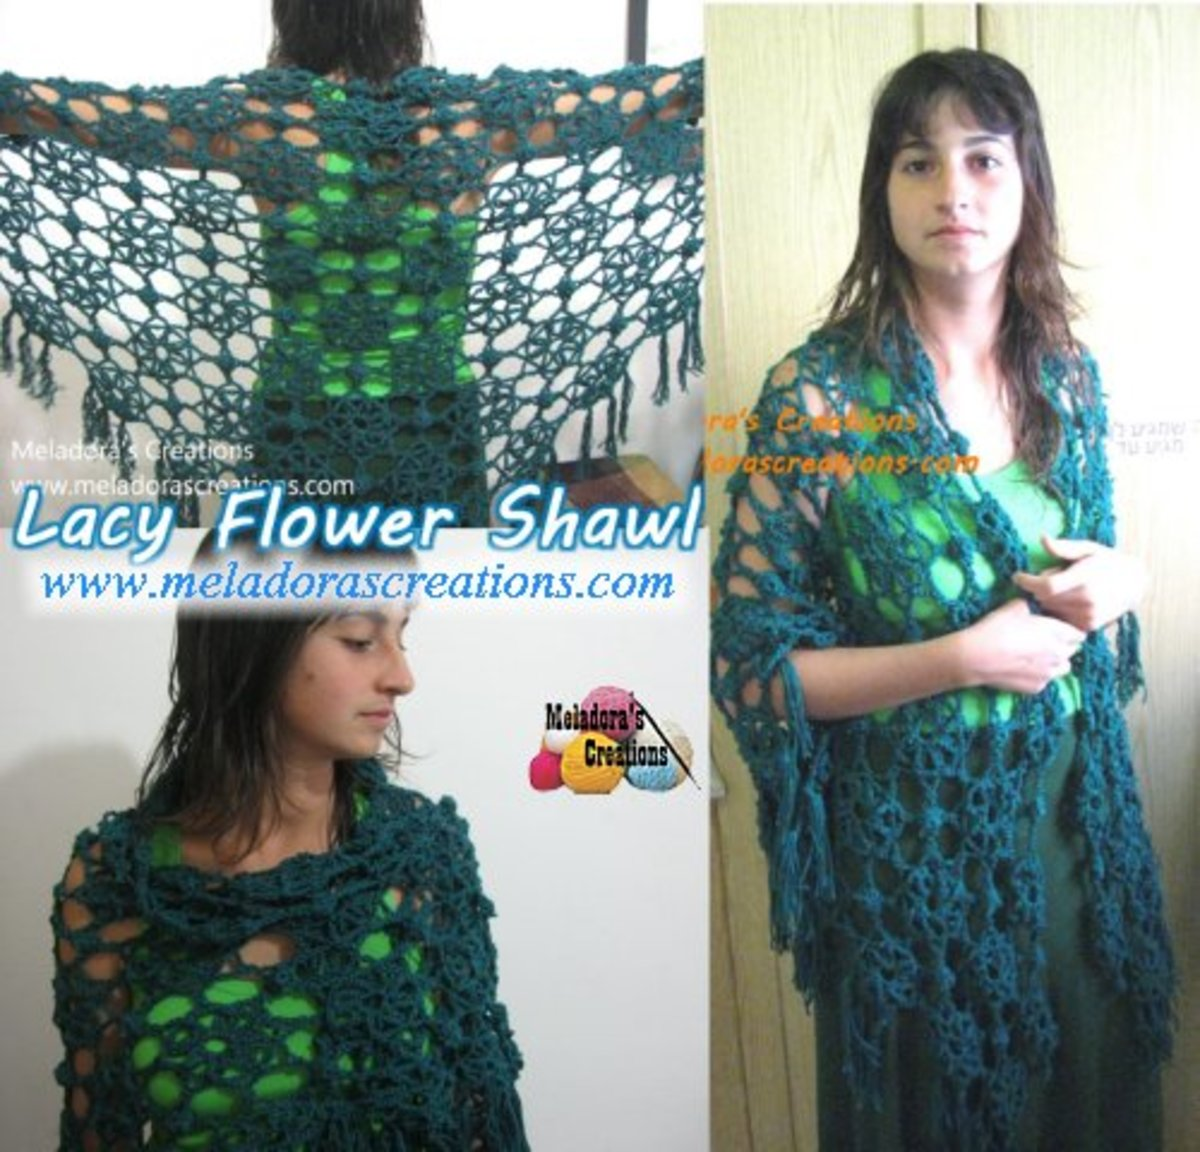 Lacy Flower Shawl